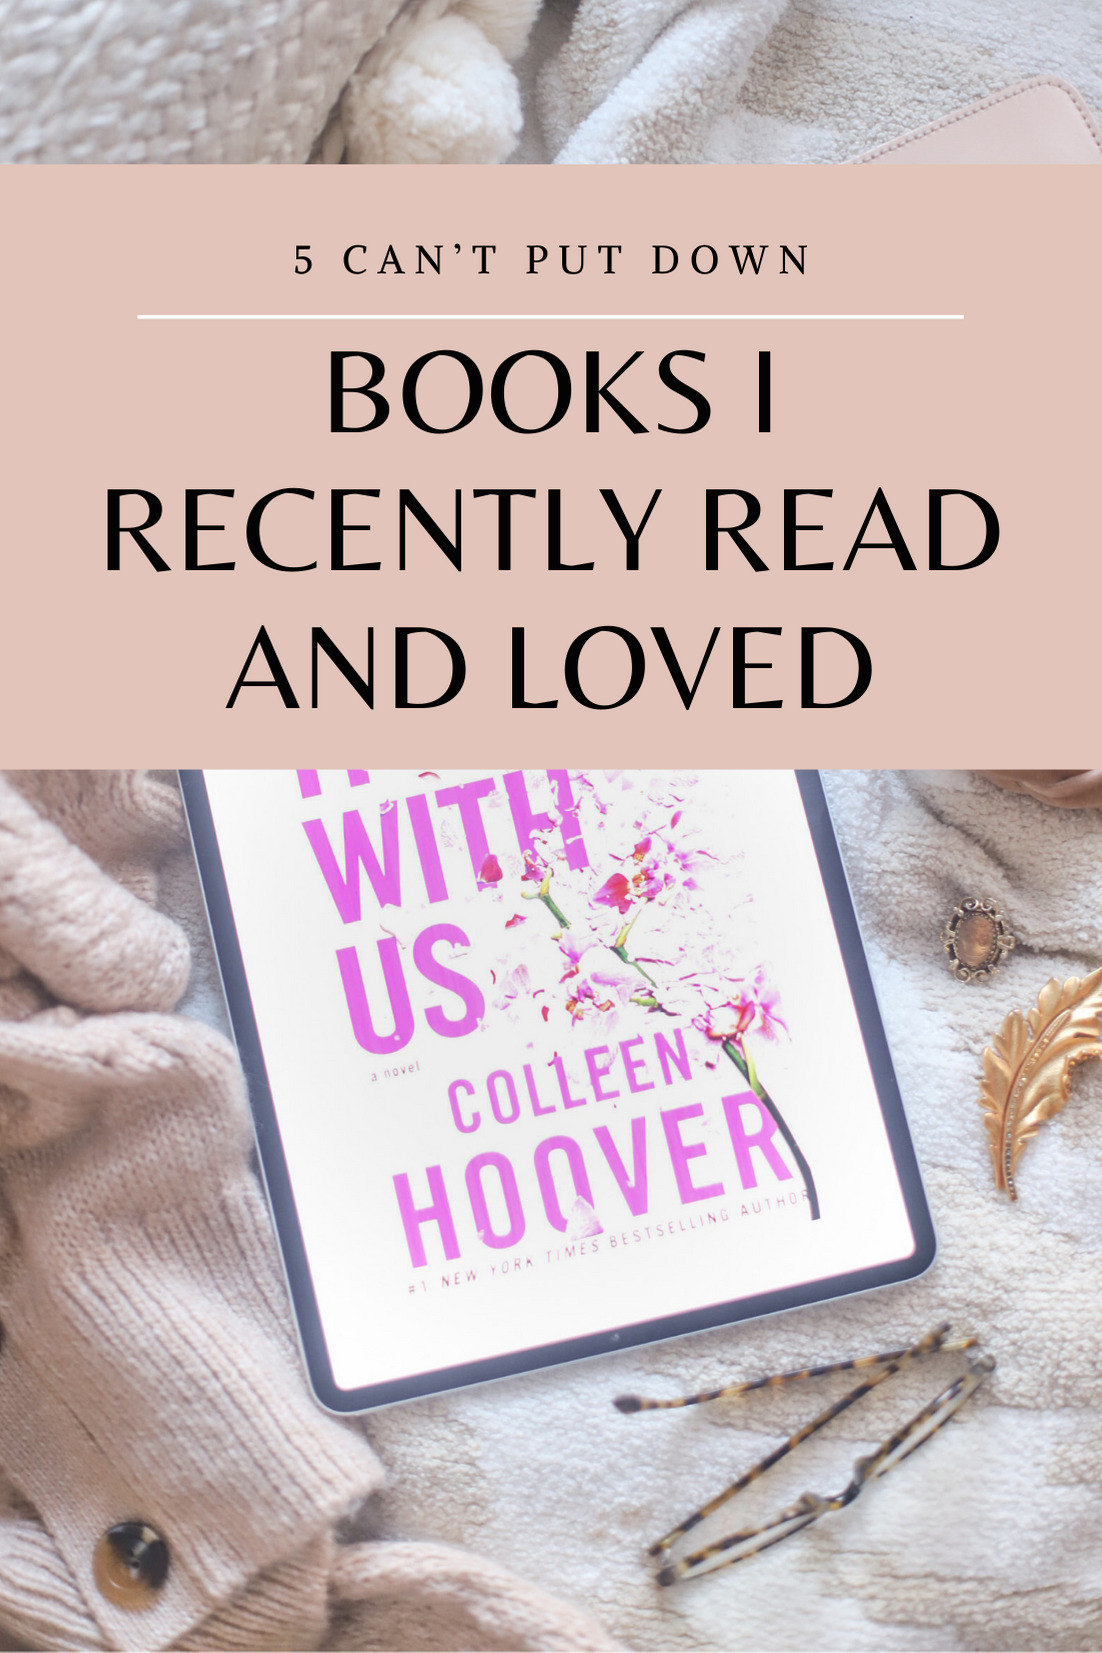 Book Recommendations, including It Ends With Us by Colleen Hoover | @glitterinclexi | GLITTERINC.COM